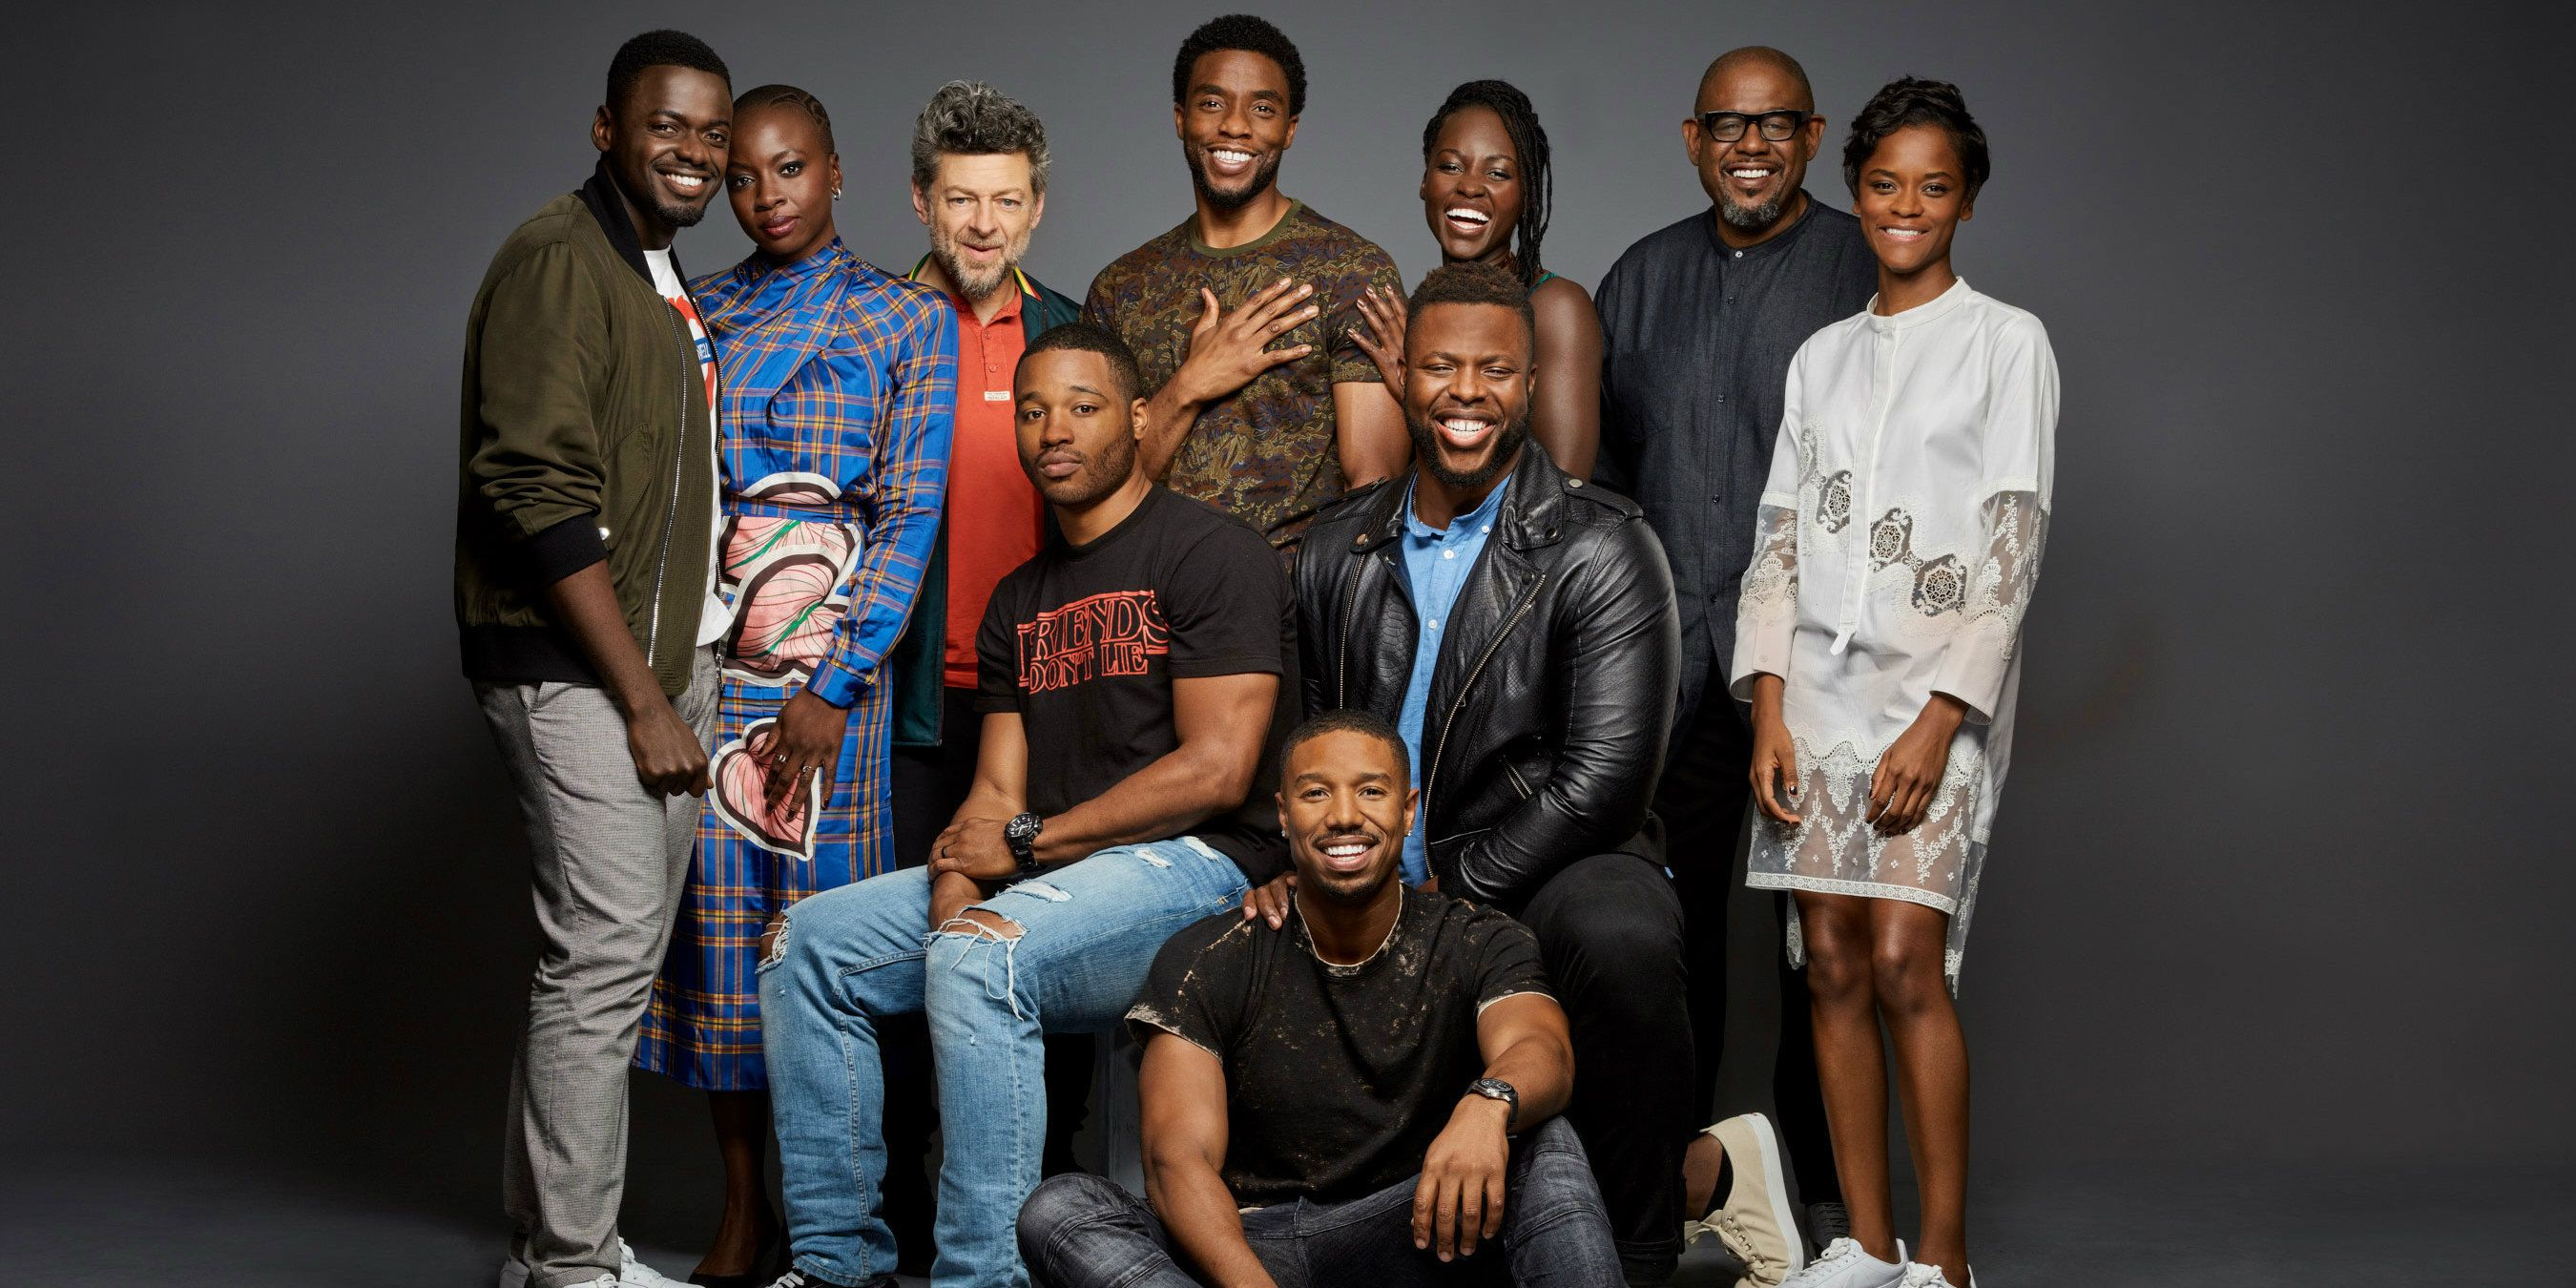 black panther cast reacts to sdcc footage screenrant. Black Bedroom Furniture Sets. Home Design Ideas